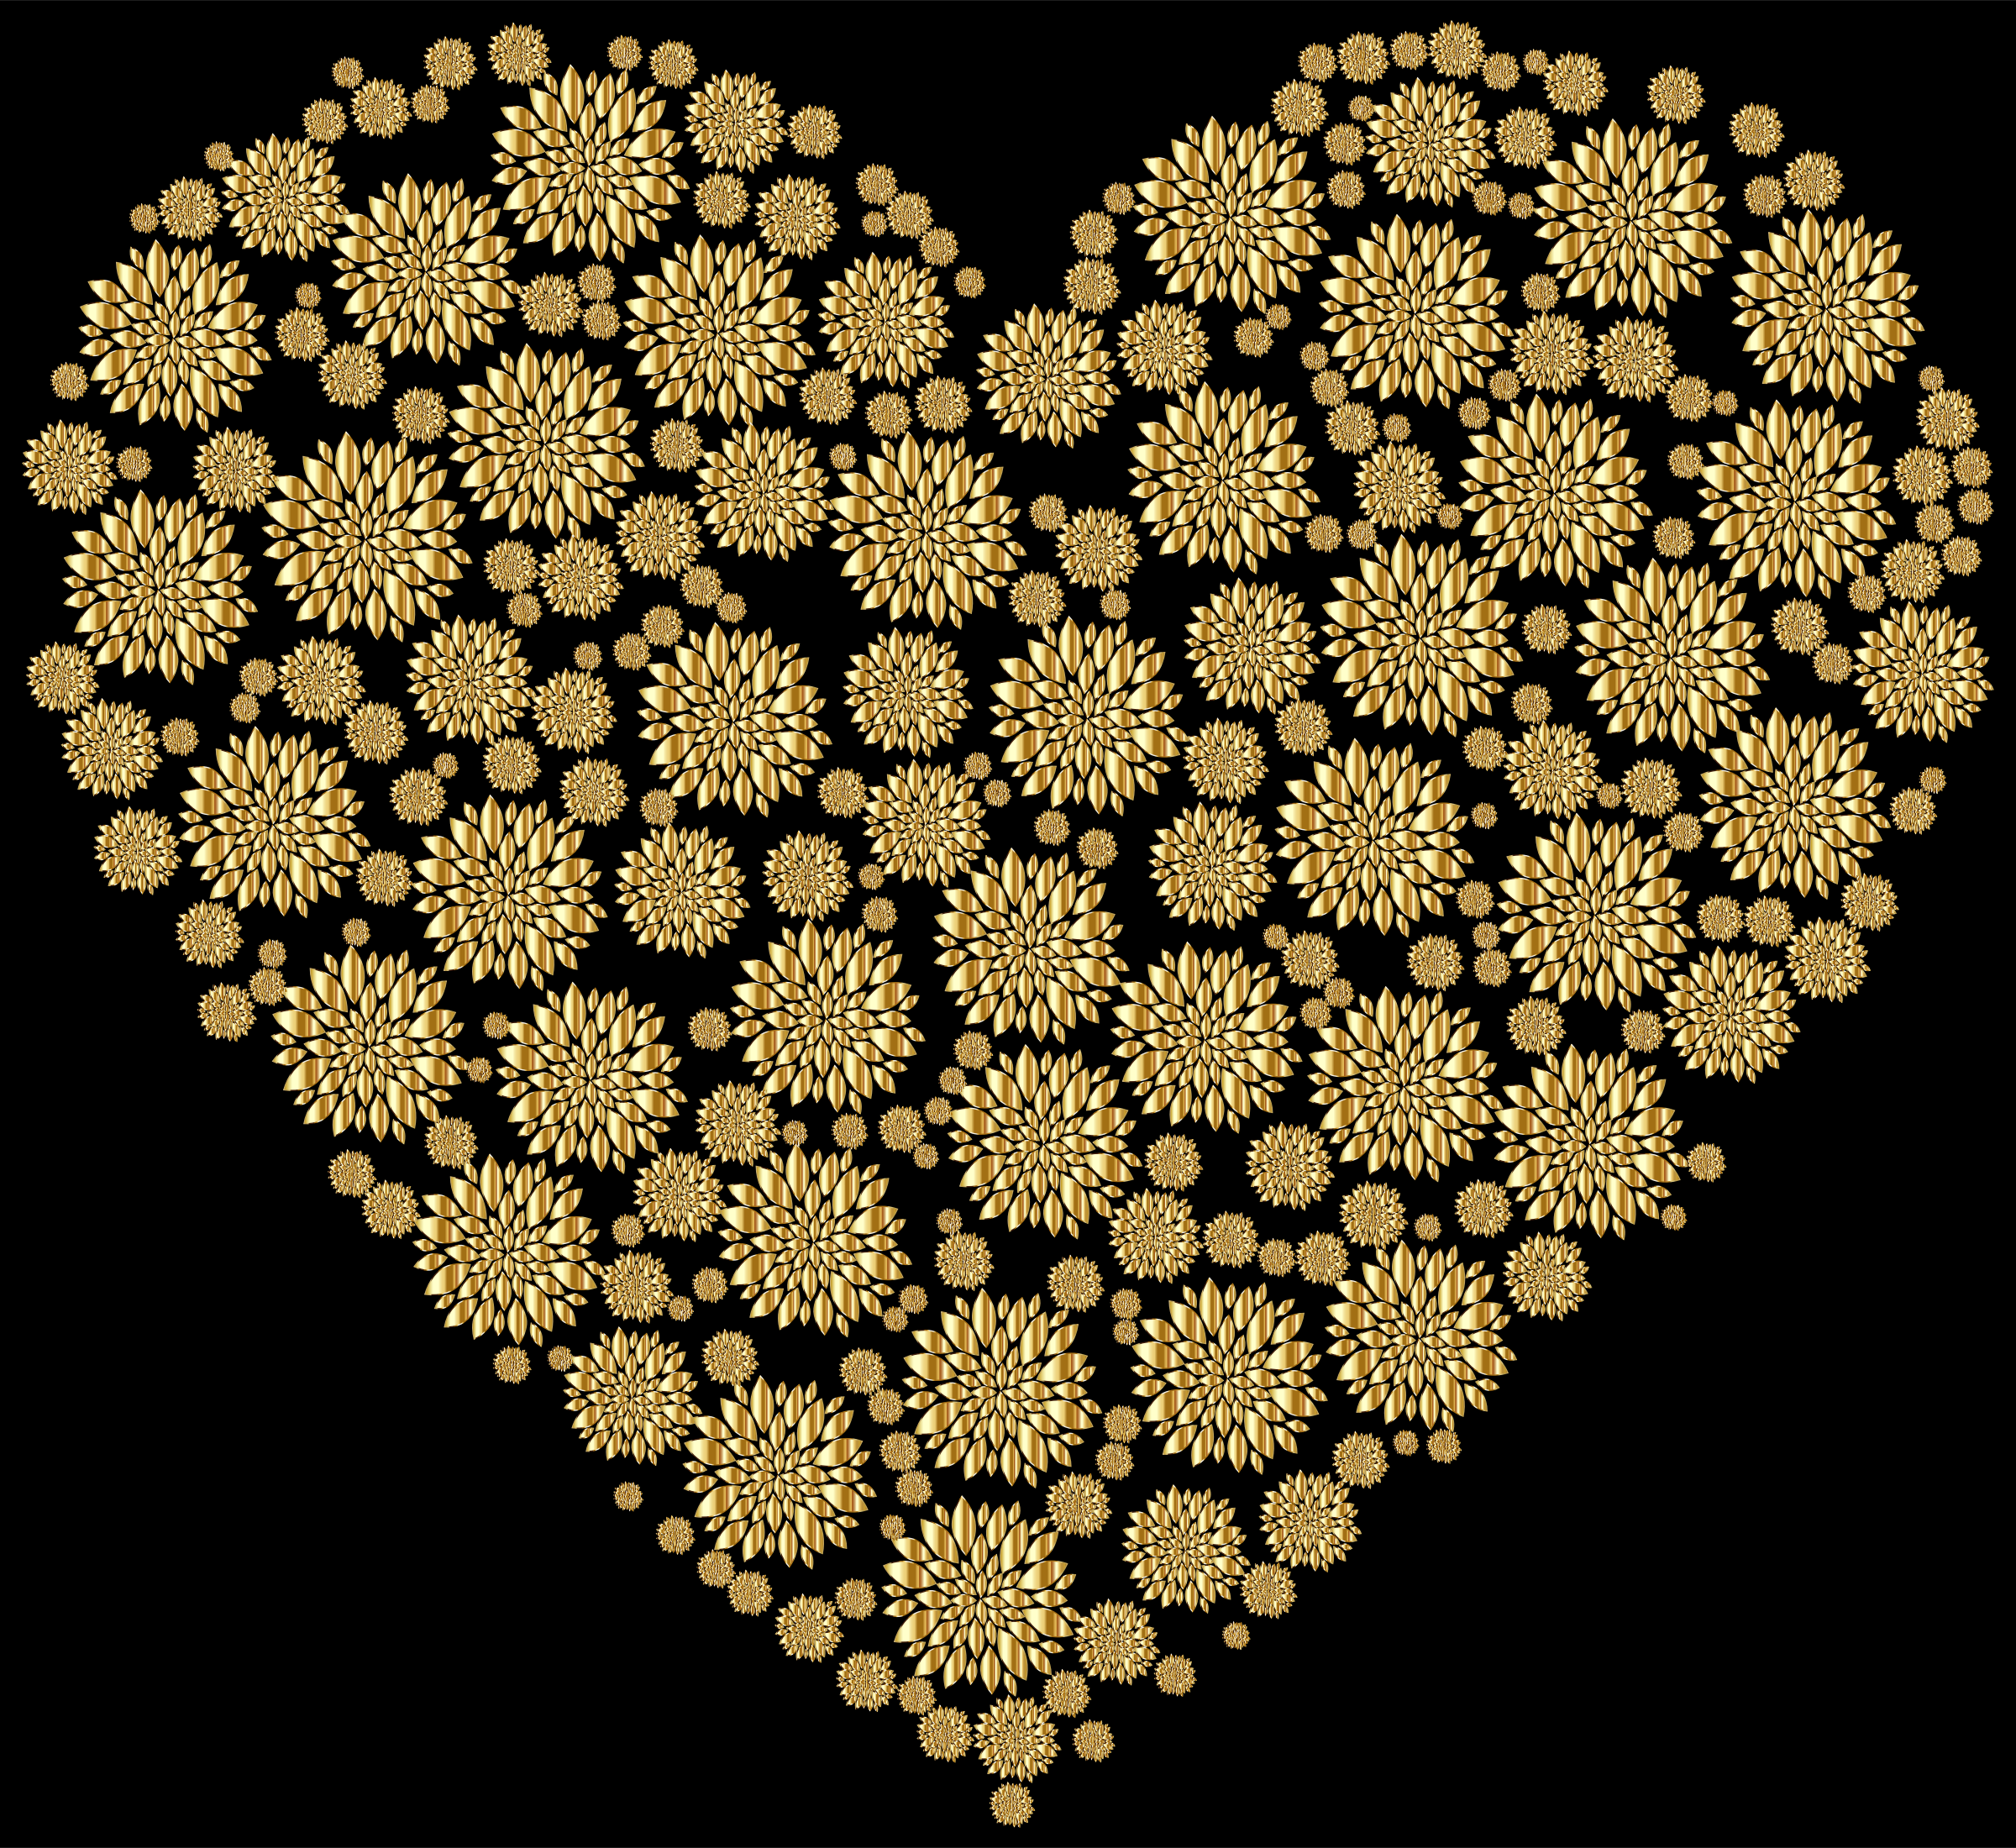 Gold Petals Heart With Background by GDJ